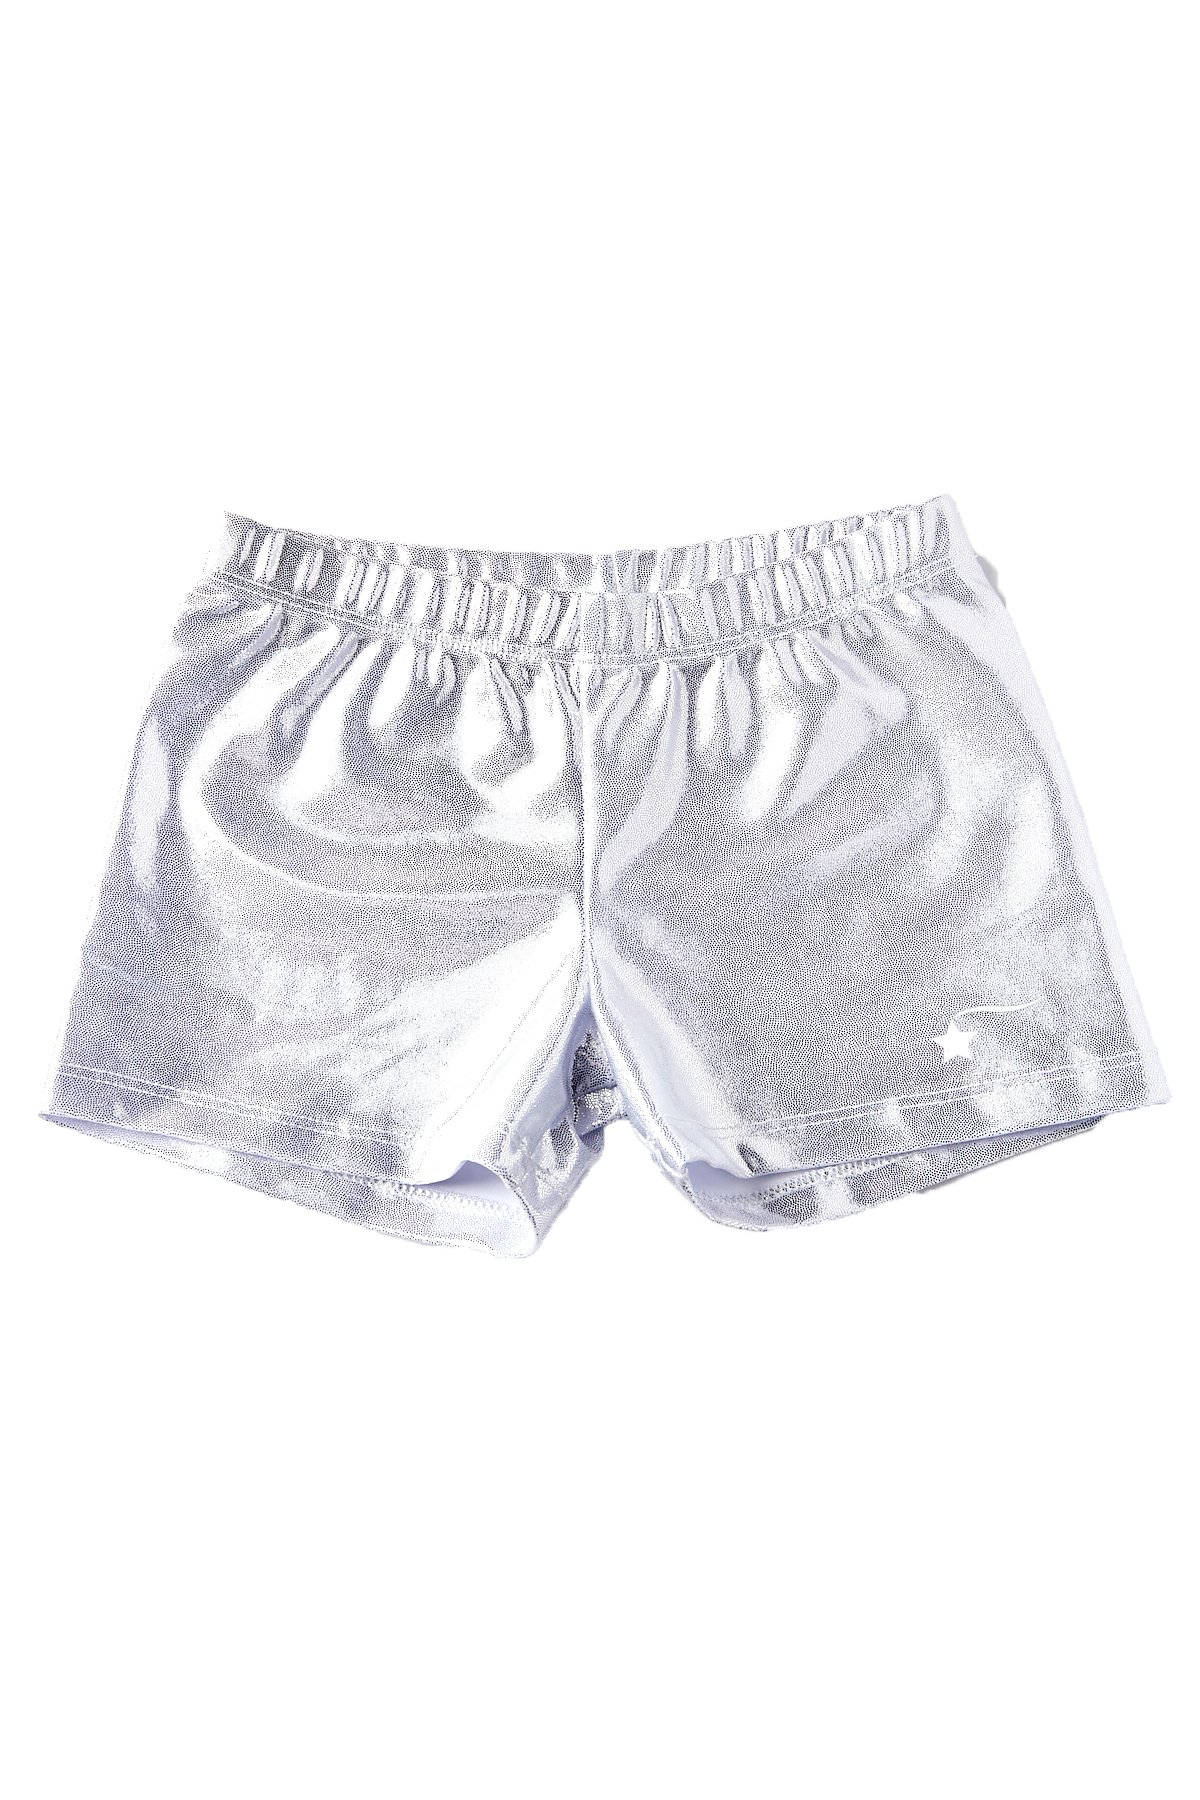 e4e260e93 Galleon - DESTIRA Silver Gymnastics Sport Shorts For Girls